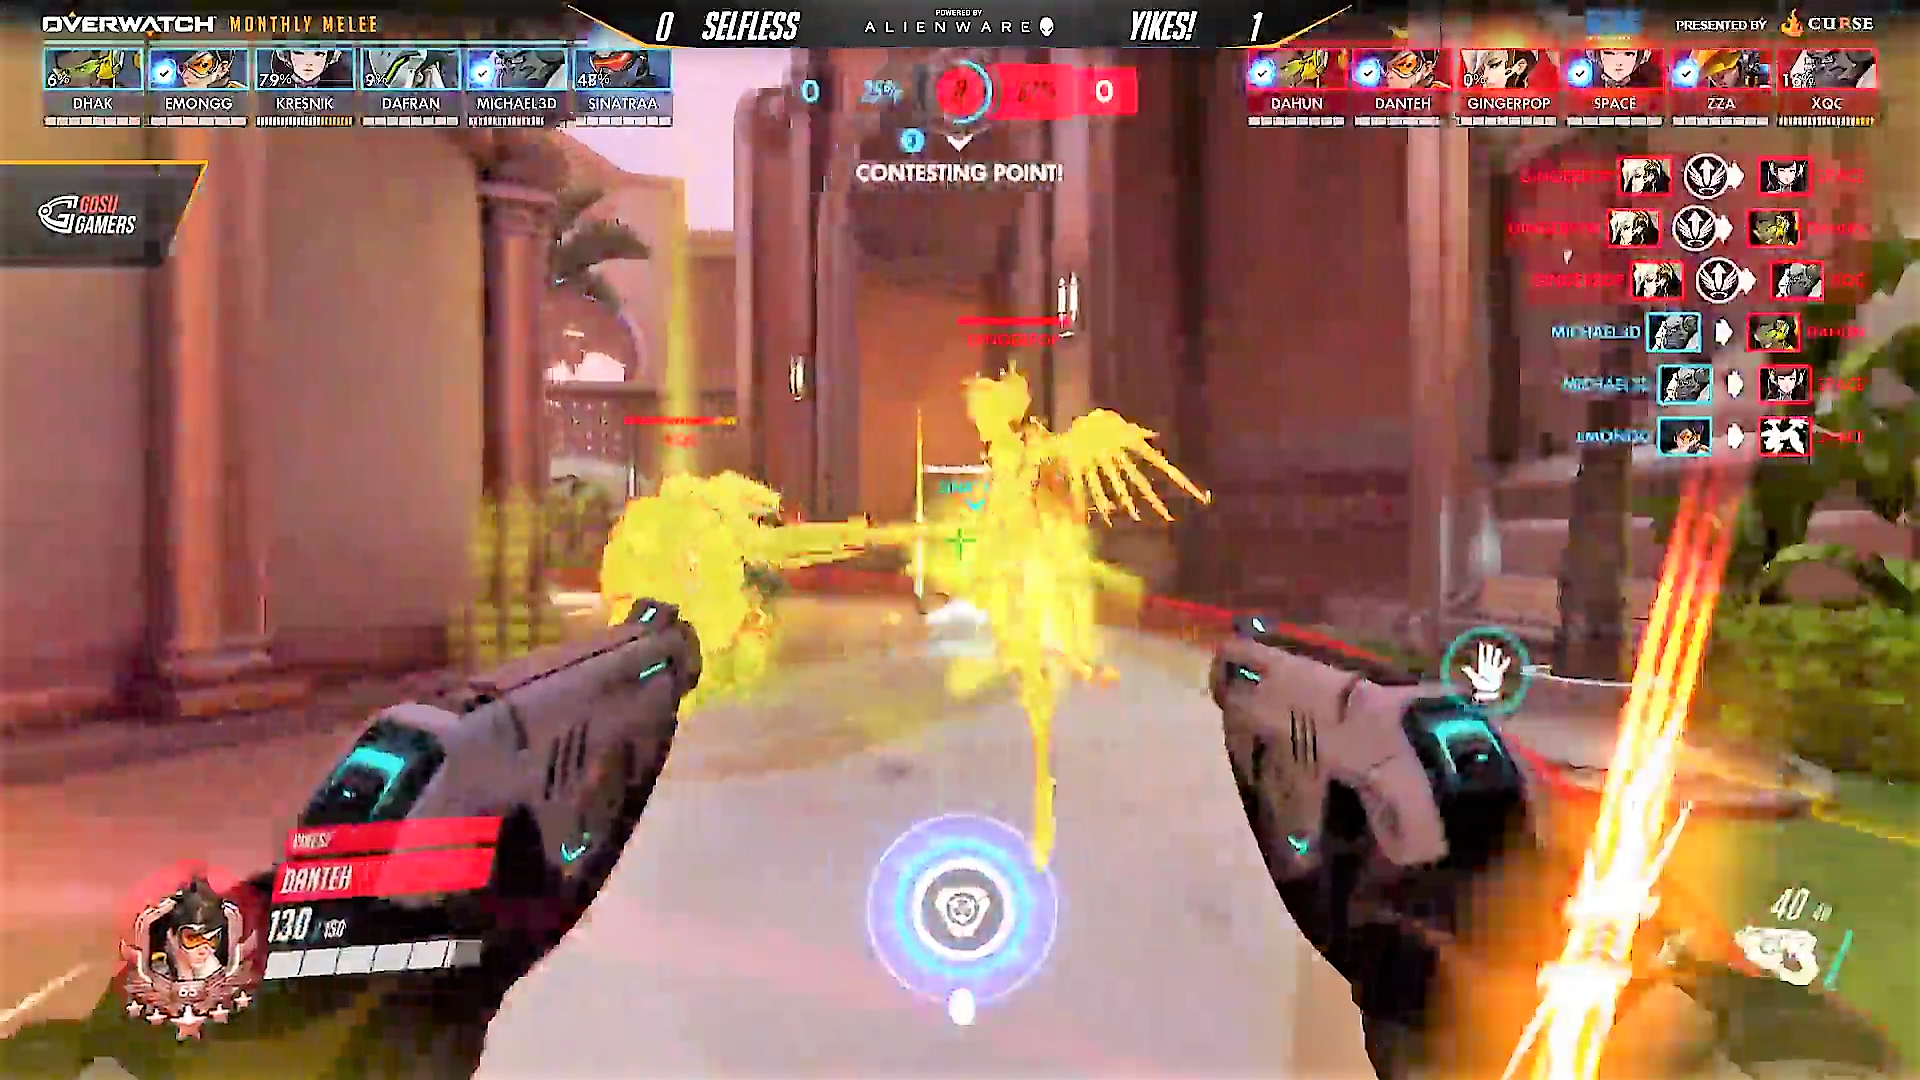 Gingerpop, looking like the best Mercy currently, resurrecting teammates to win a fight.